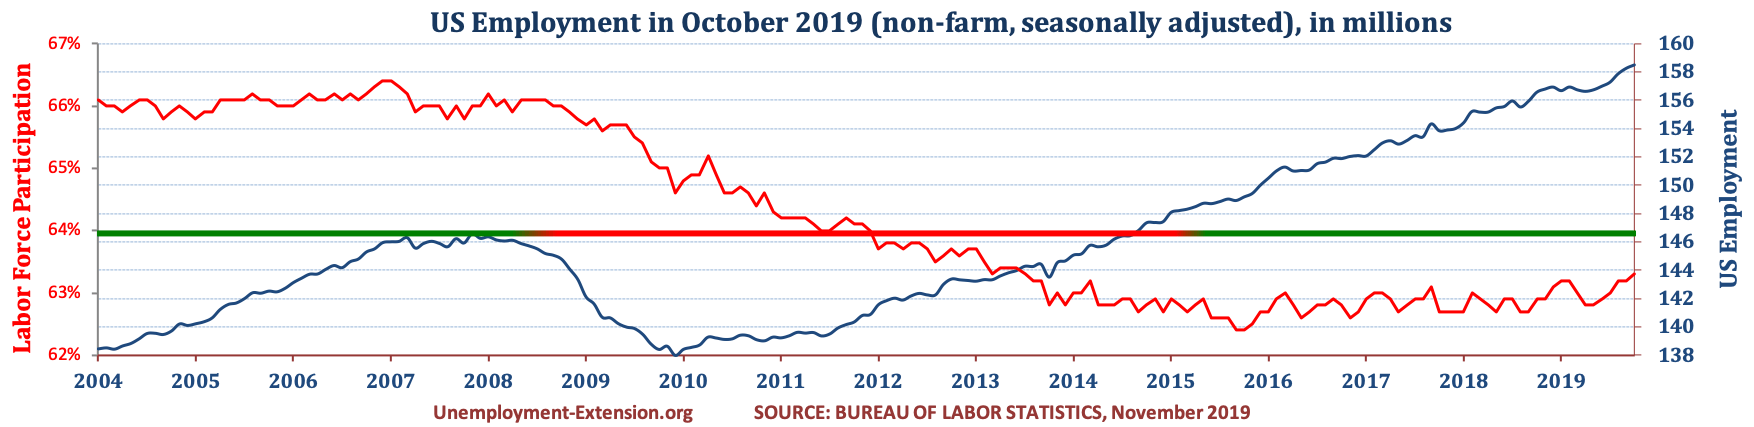 Total US Employment (non-farm, seasonally adjusted) in October of 2019. US economy has lost approximately 10 million jobs in comparison to pre-resession level.